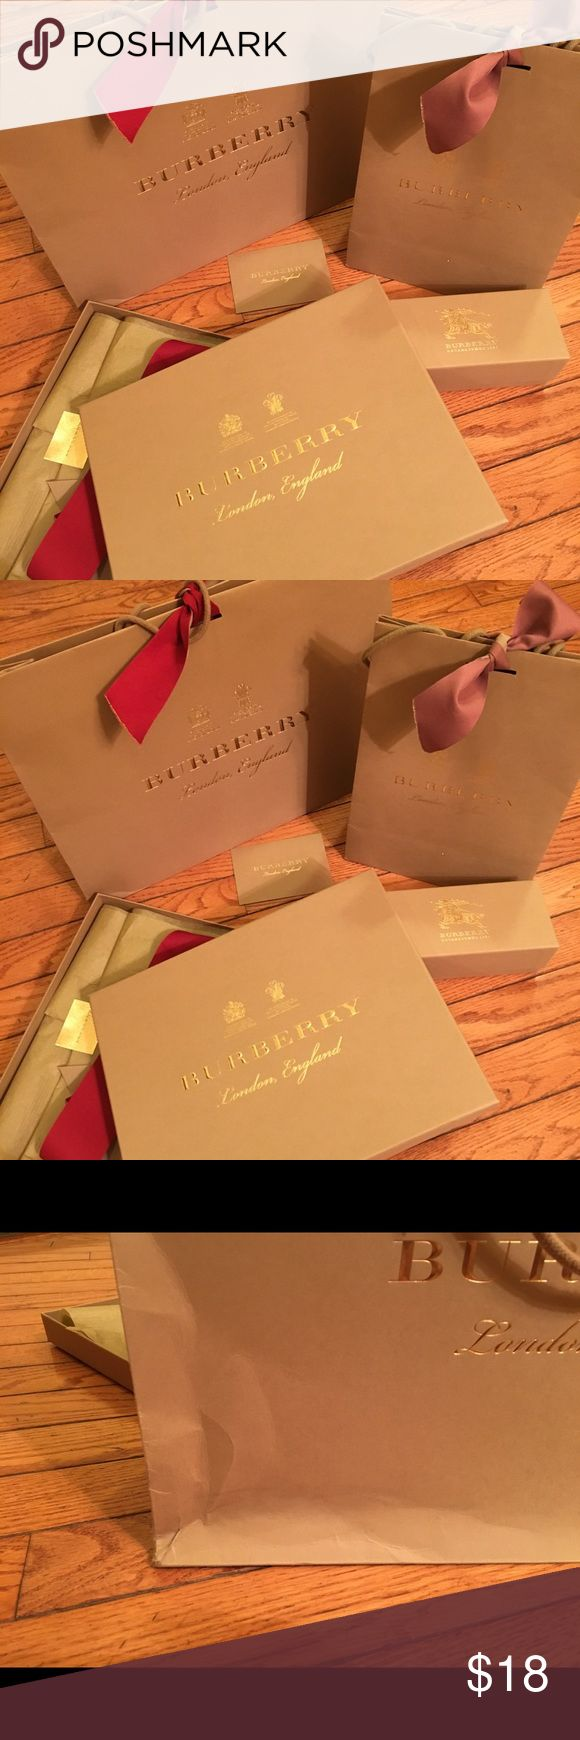 Lot of Burberry shopping bags 2 Burberry shopping bag 1 scarf box with tissues ribbon small envelope 1 Burberry sunglasses box Ribbons Creases bottom of the bag as shown Burberry Bags